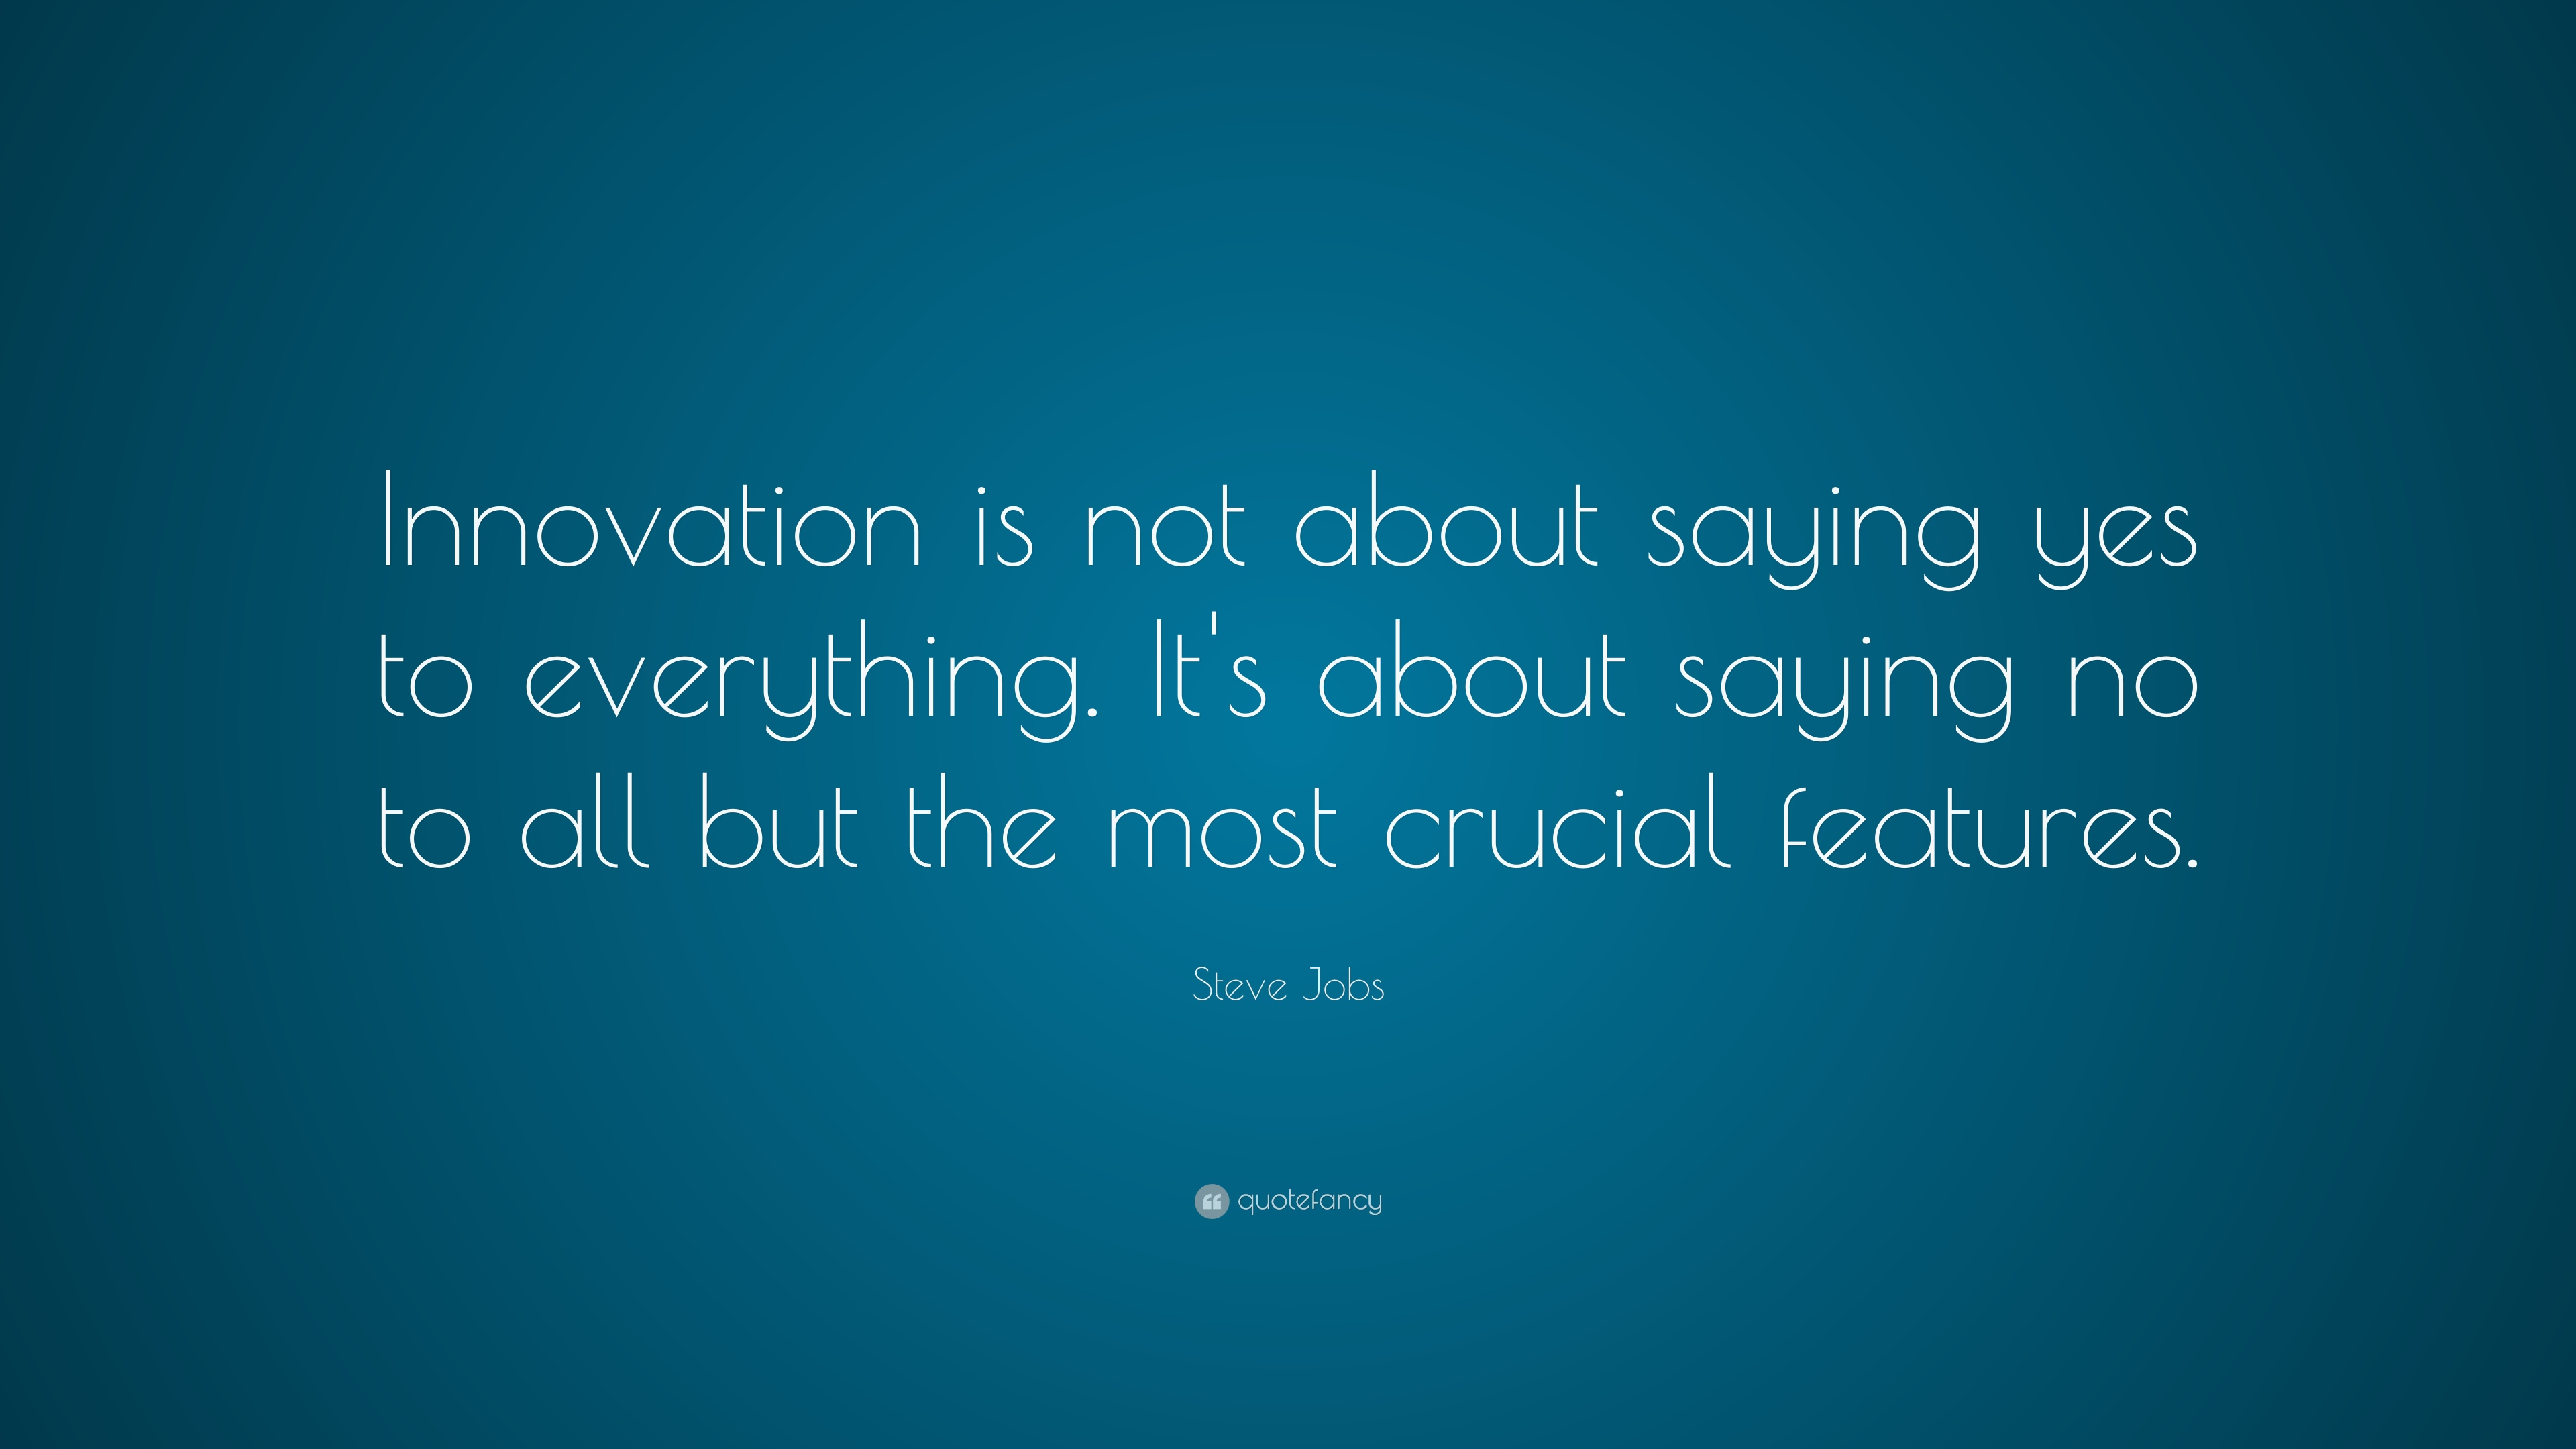 Short Quotes Wallpapers Hd Steve Jobs Quote Innovation Is Not About Saying Yes To